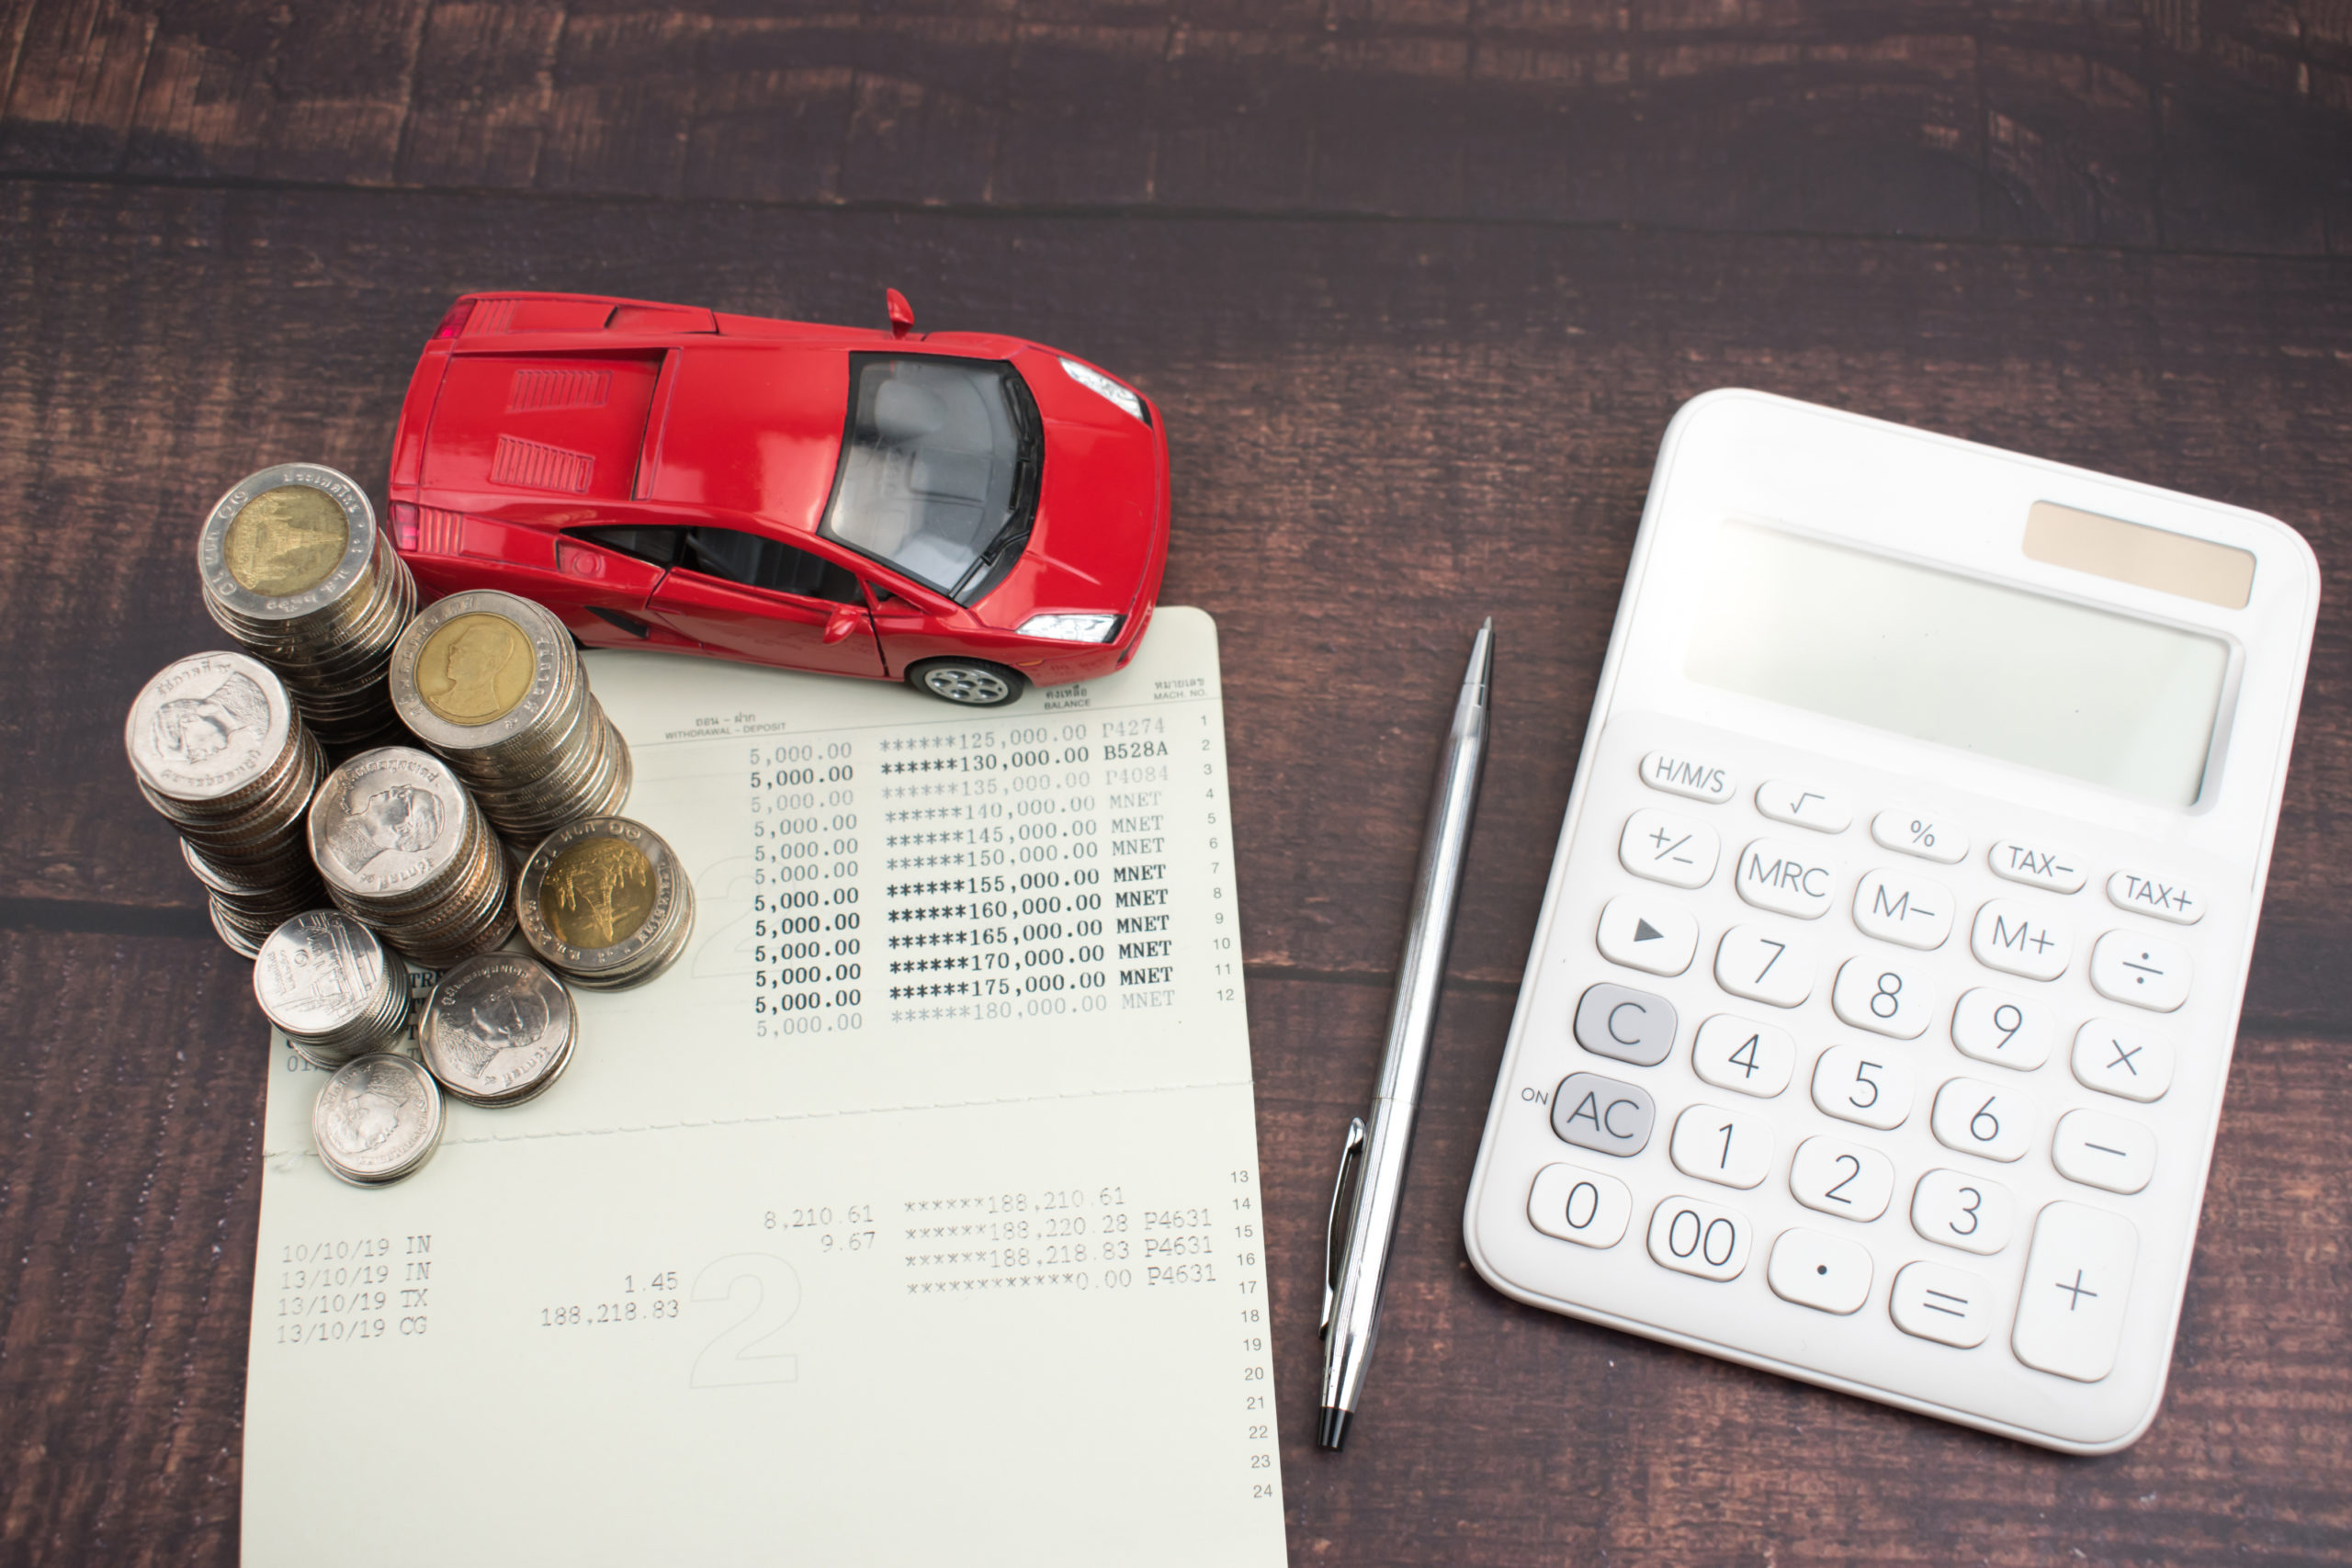 Pile of coins, black ballpoint pen, calculator and red car on paper form Increased spending for car purchases. Finance, buy a car.